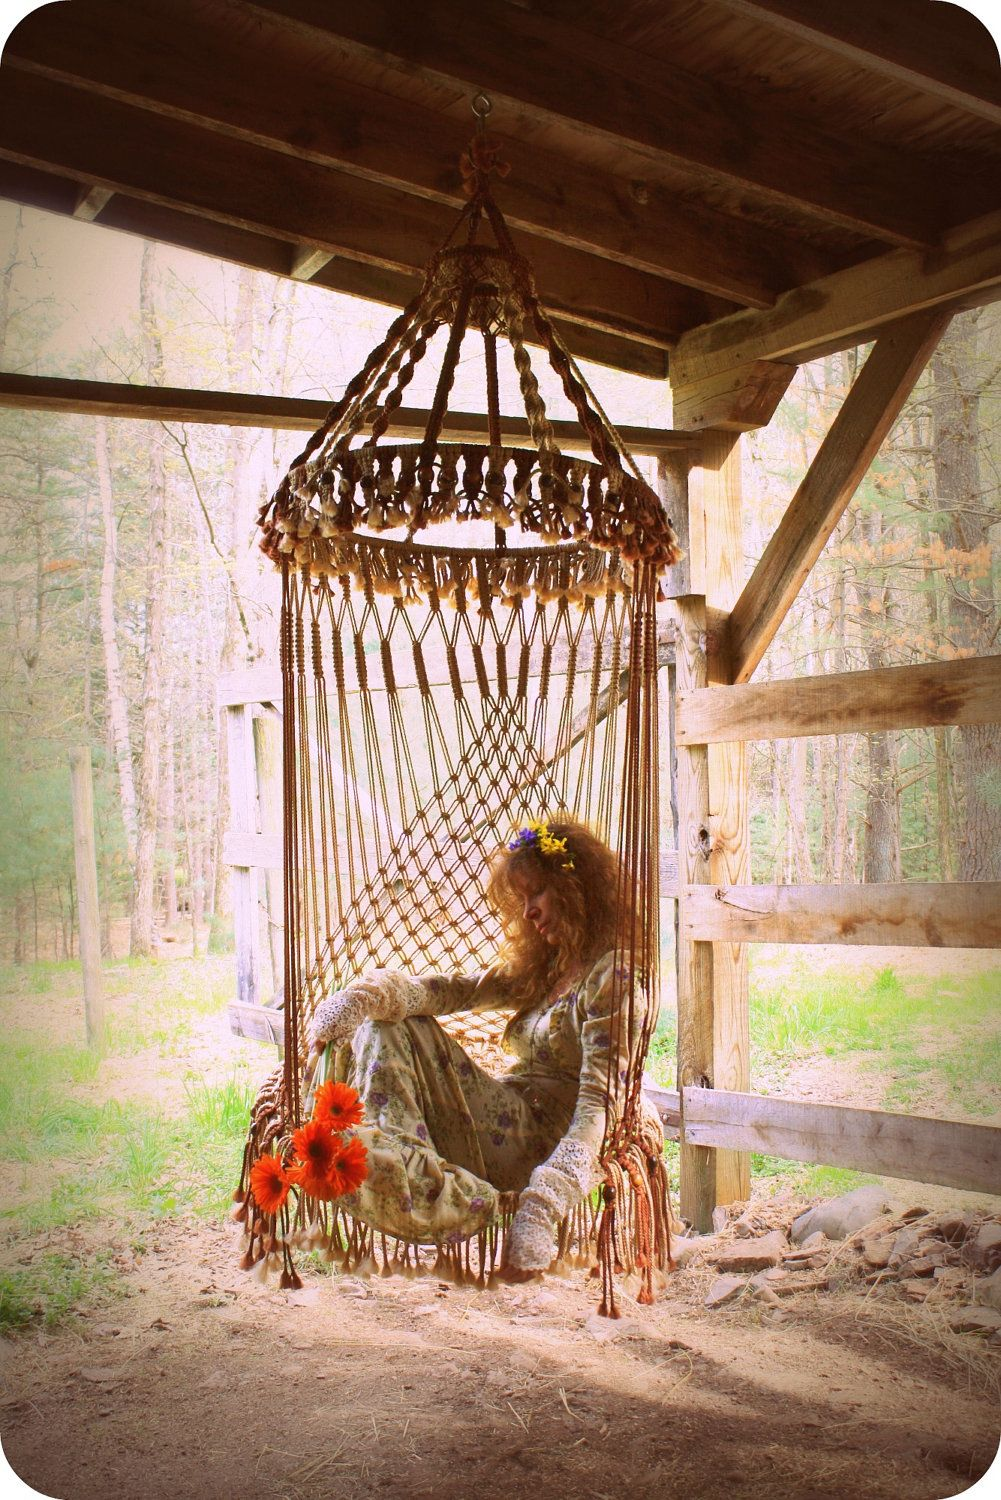 Hanging Chairs Beds Hammocks And Lounges Handmade OOAK Macrame Vintage Retro Style Woodstock Hippie Elf Fairy Swing Chair As Seen On HGTV Junk